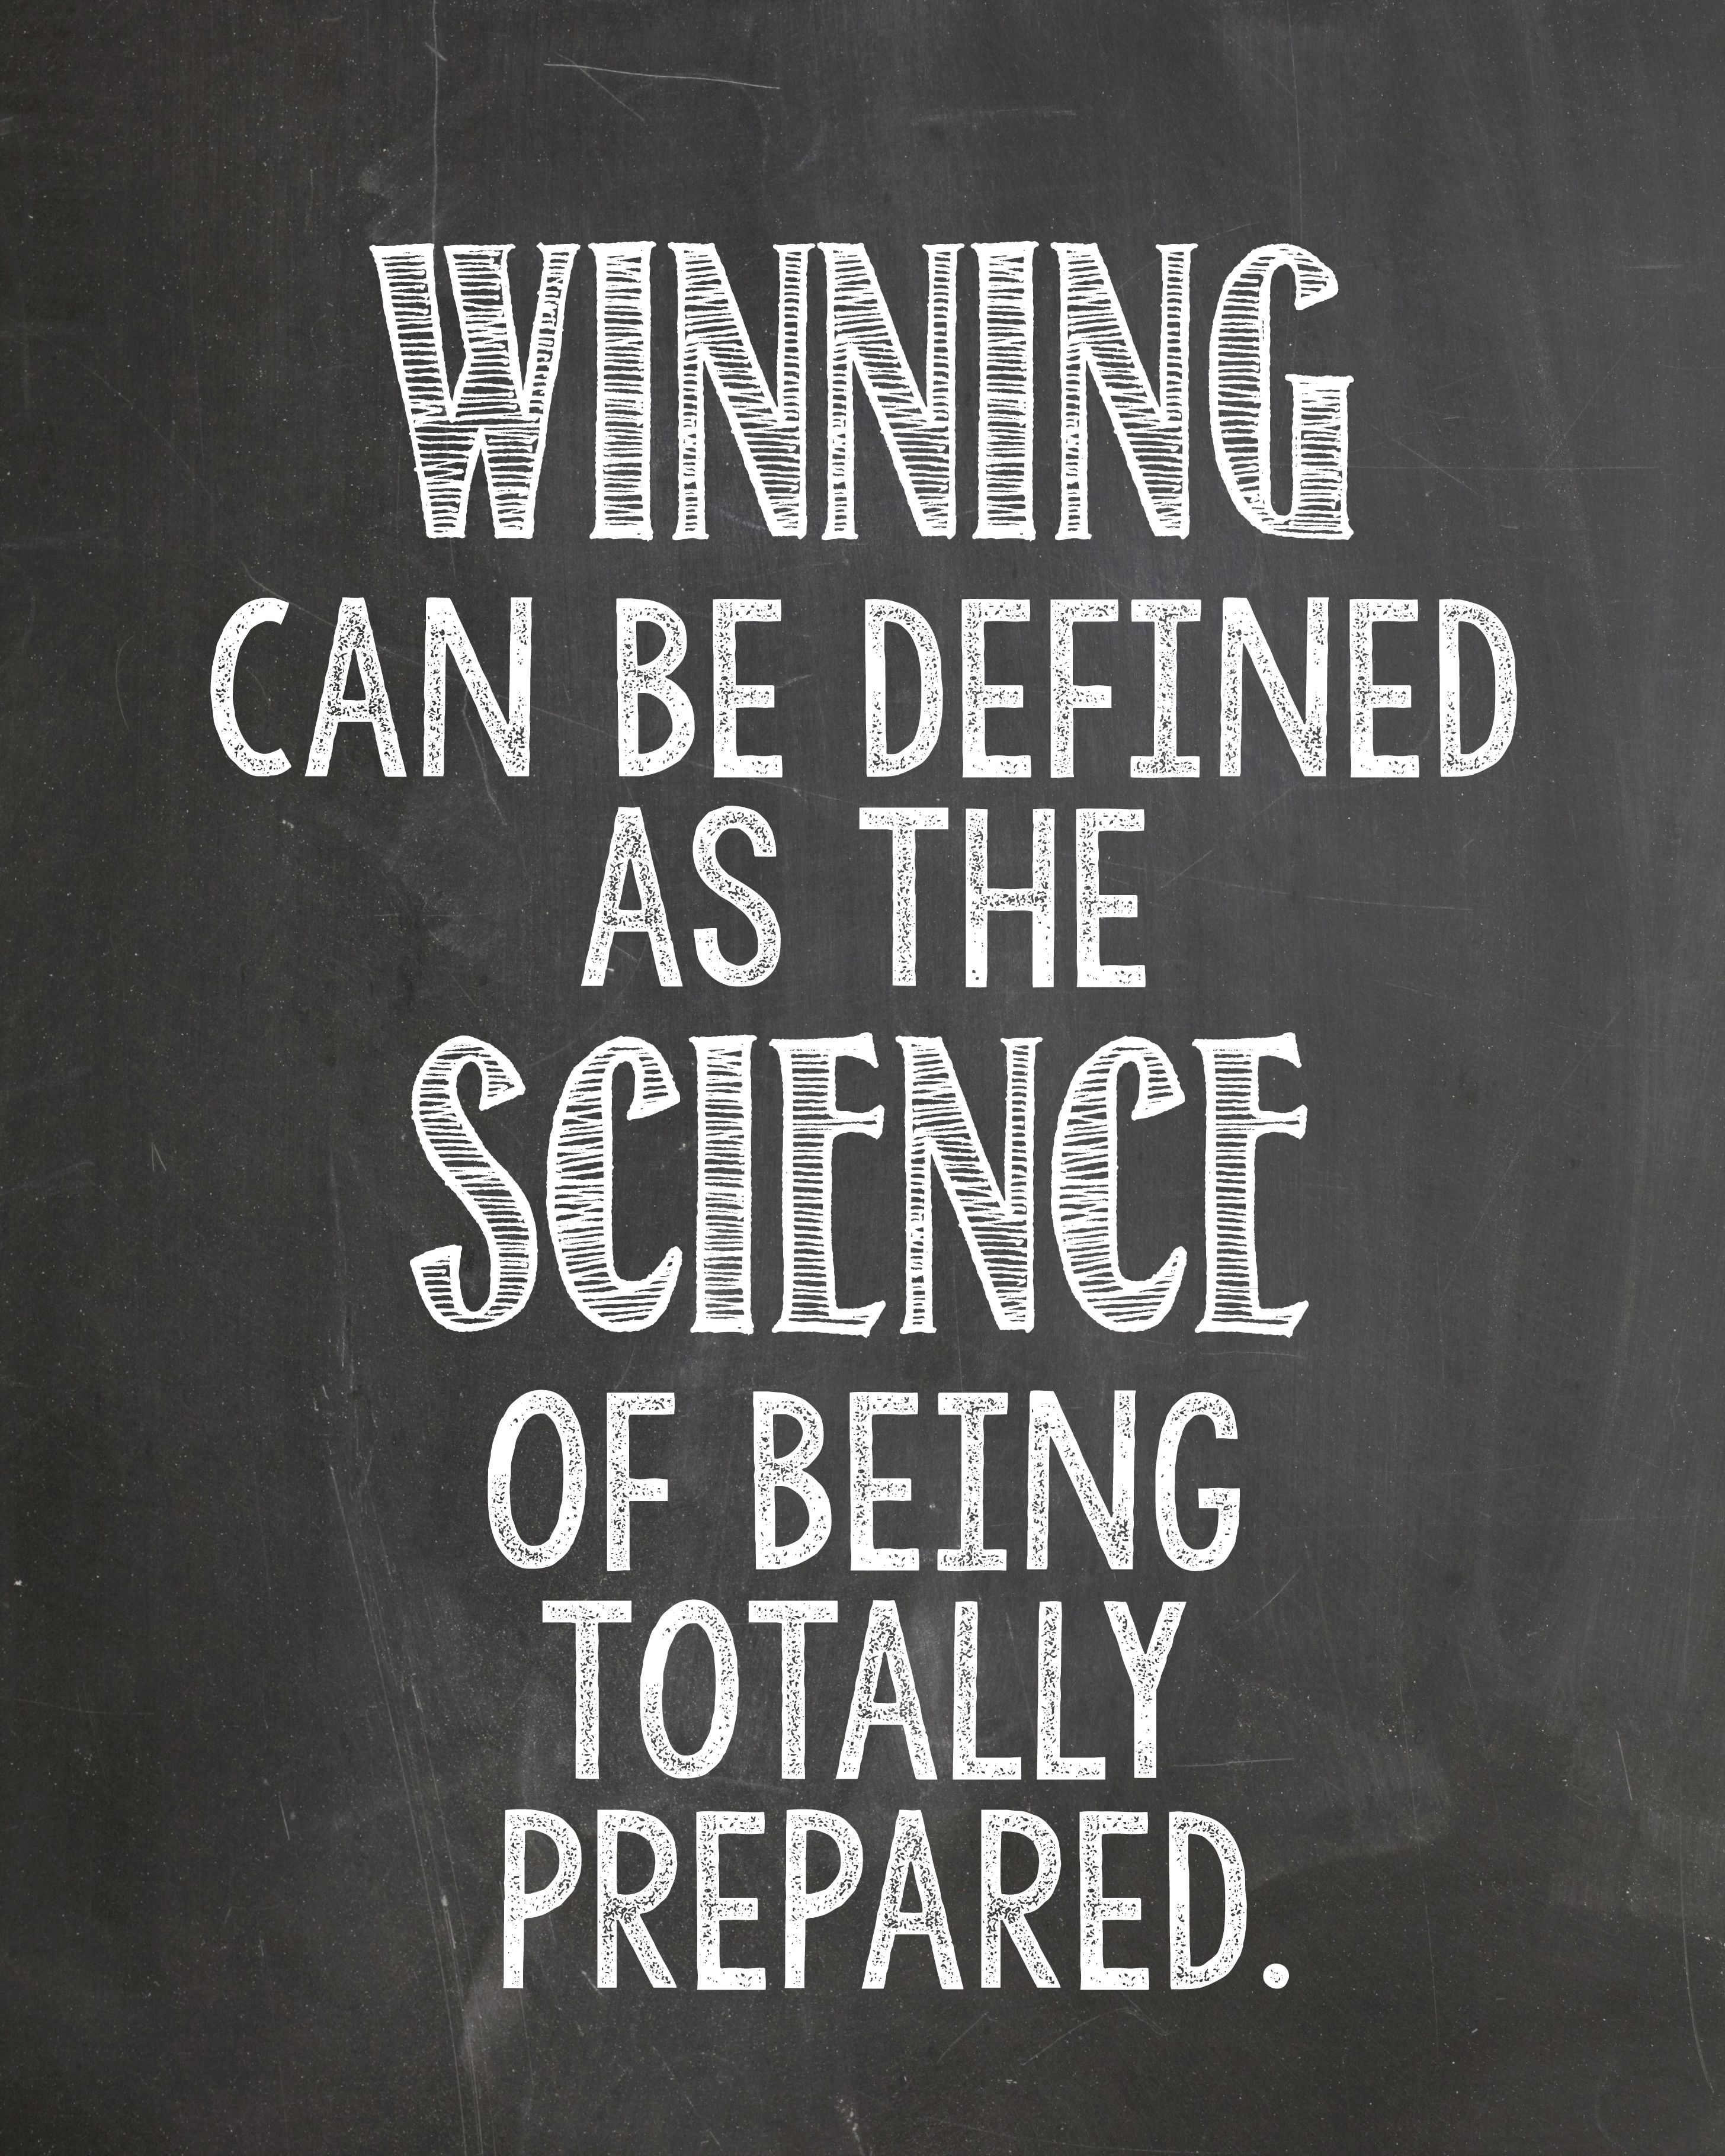 Motivation Winning Can Be Defined As The Science Of Being Totally Prepared One Of My Favorite Quotes Preparation Quotes Favorite Quotes Life Quotes